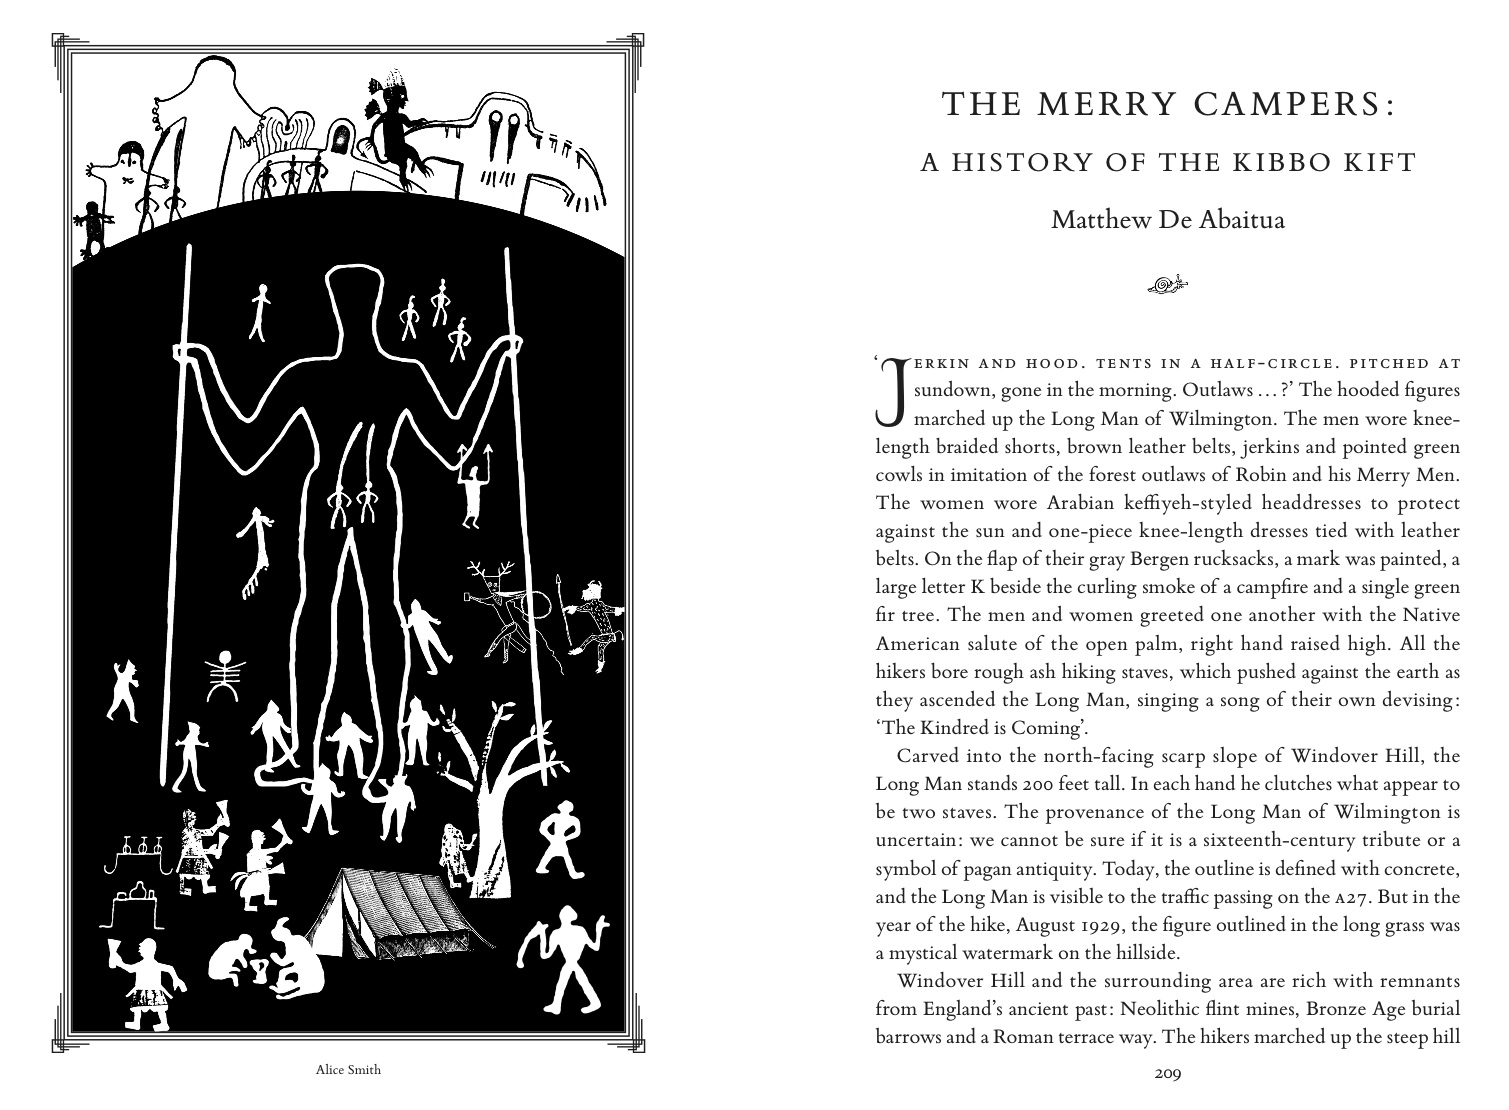 the idler and the kibbo kift harry bravado extract from matthew de abaitua s essay the merry campers about the kindred of the kibbo kift